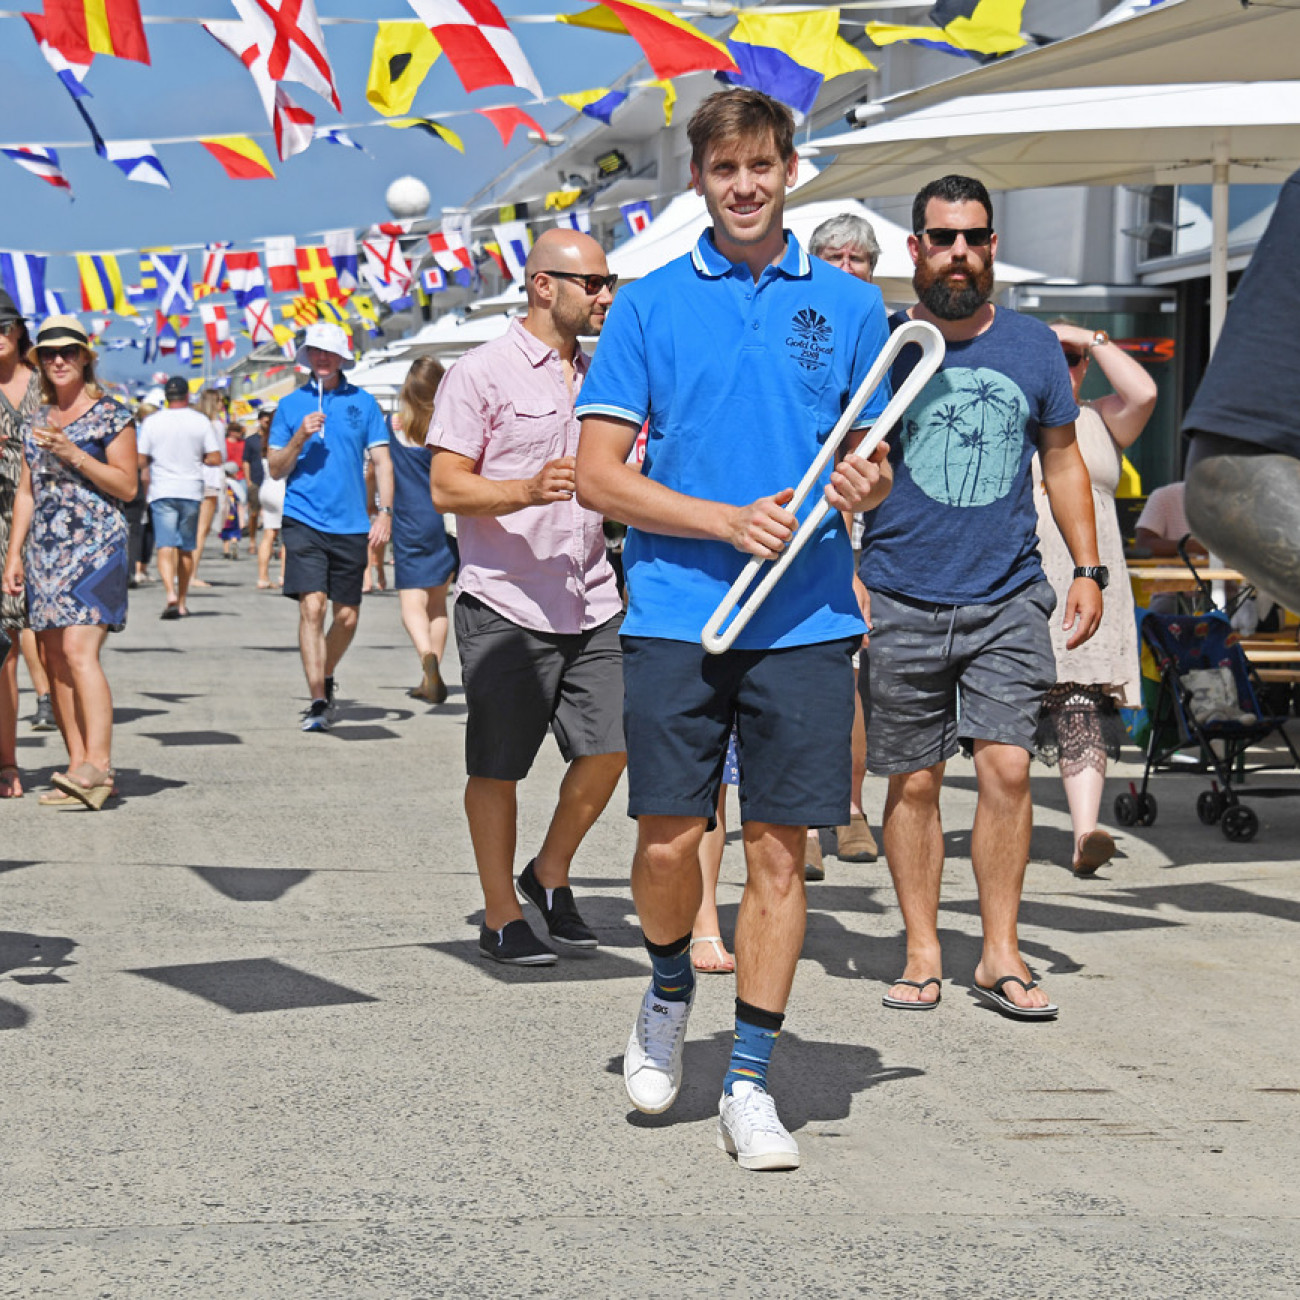 The Queen's Baton and hockey player Eddie Ockenden at the Taste of Tasmania festival